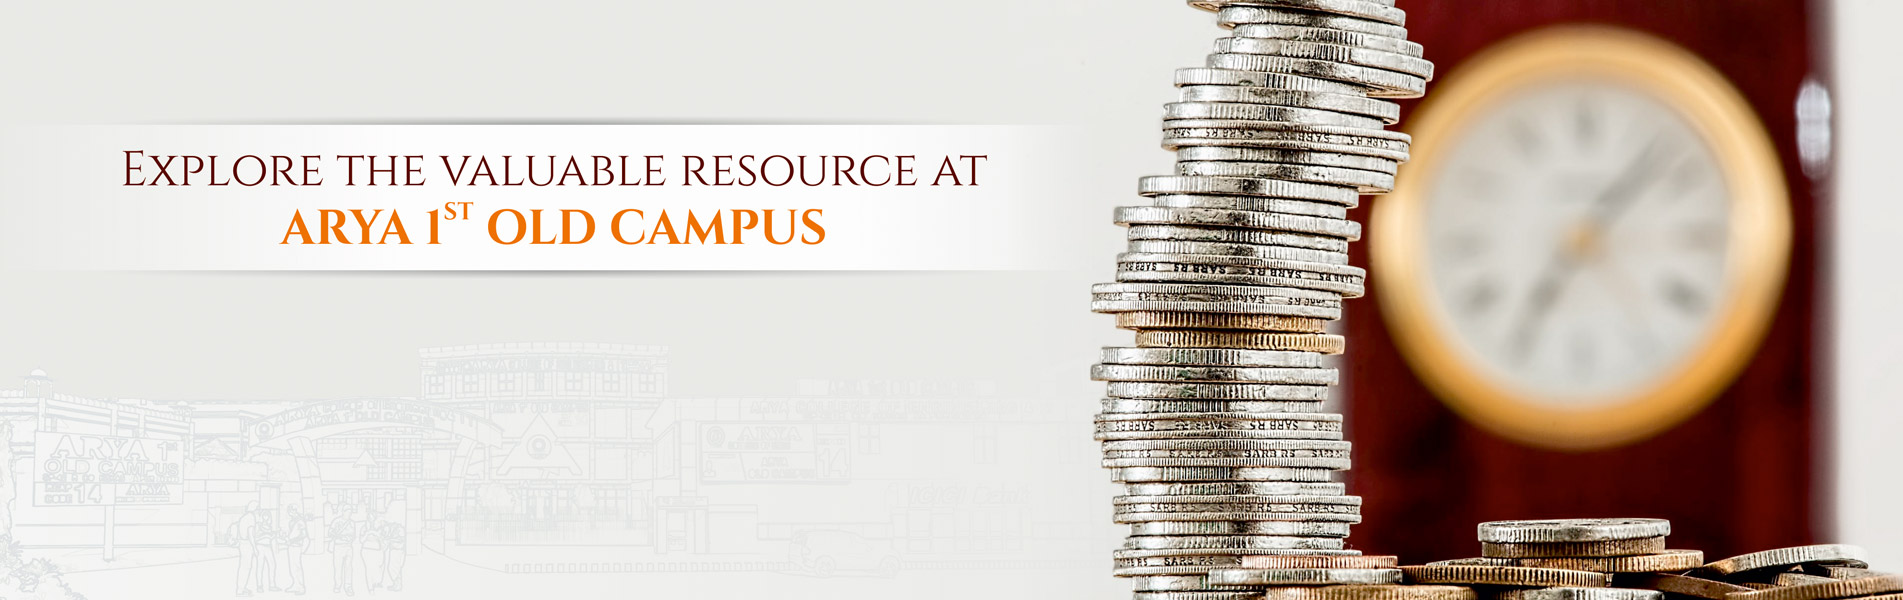 Explore-The-Valuable-Resource-at-ARYA-1st-Old-Campus